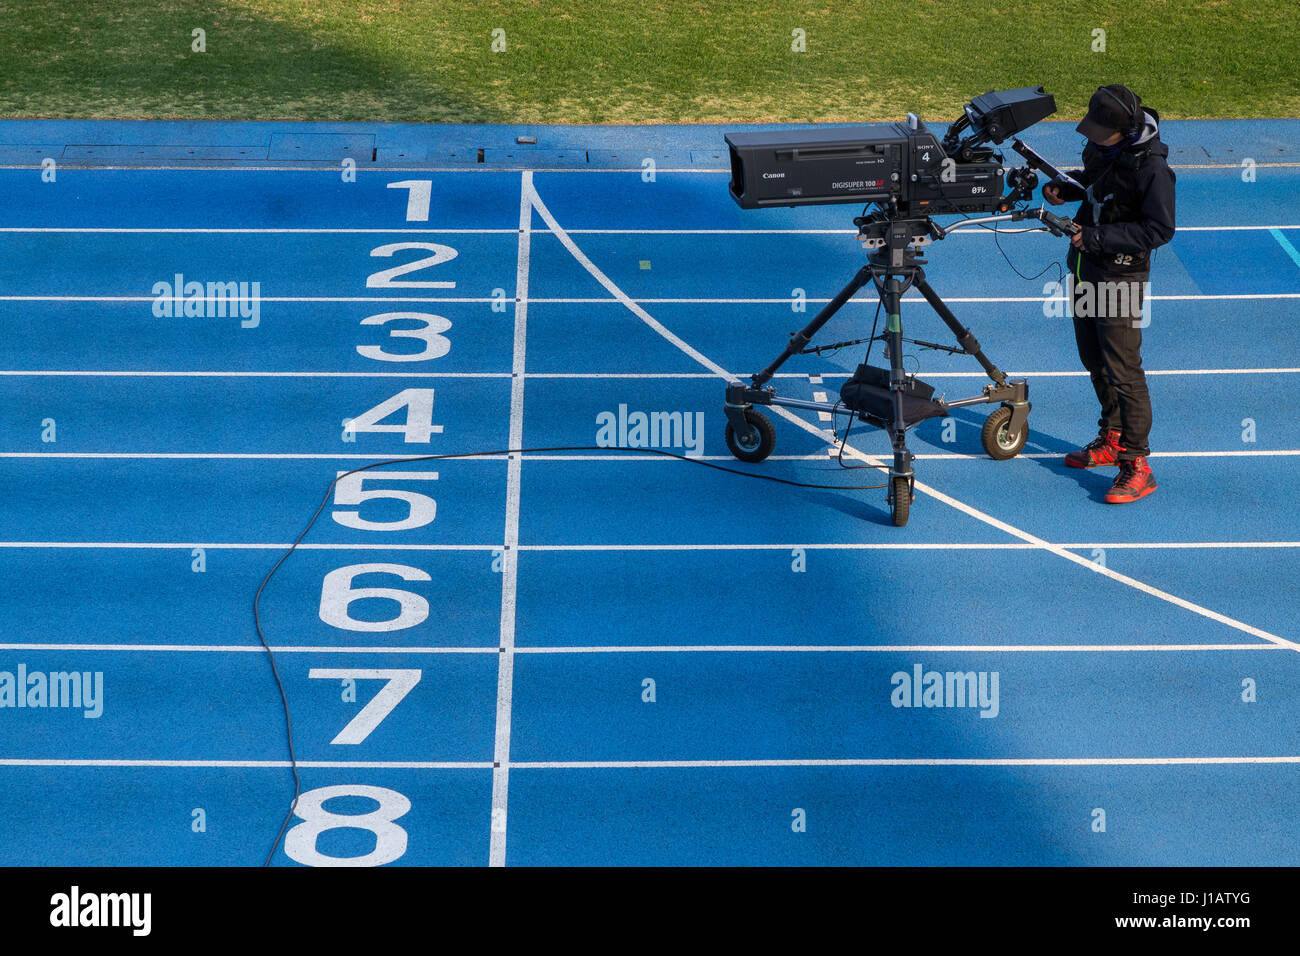 A TV camera and cameraman on a running track in a stadium in Komazawa Olympic Park, Tokyo, Japan. Monday January - Stock Image